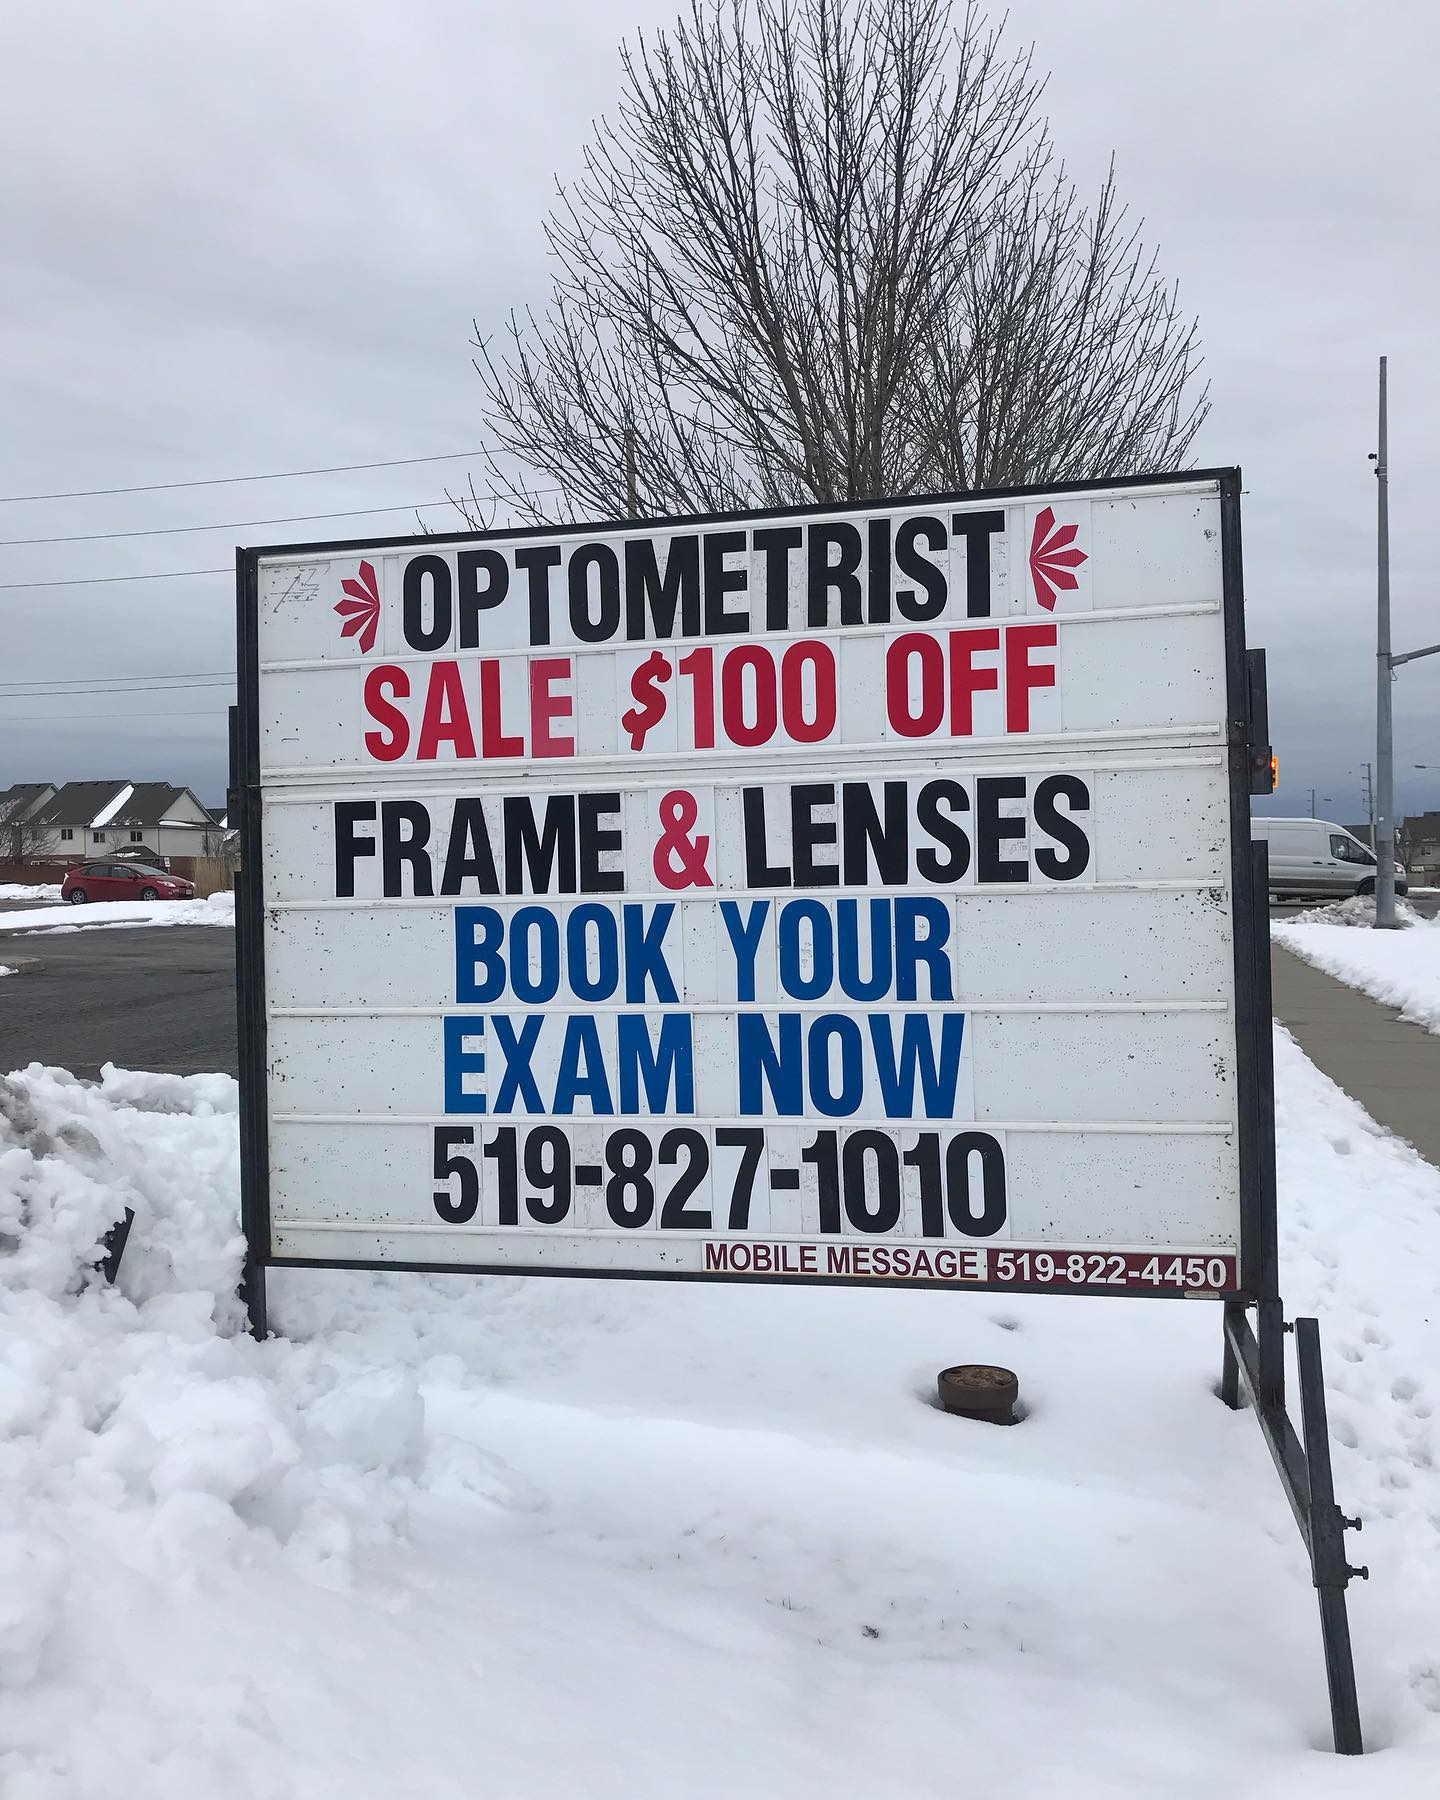 Hurry in! There's only a few days left to take part in our winter sale!! #eyepractice #rockwoodoptometrist #guelphoptometrist #rockwoodoptometry #guelphoptometry #wintersale #newglasses